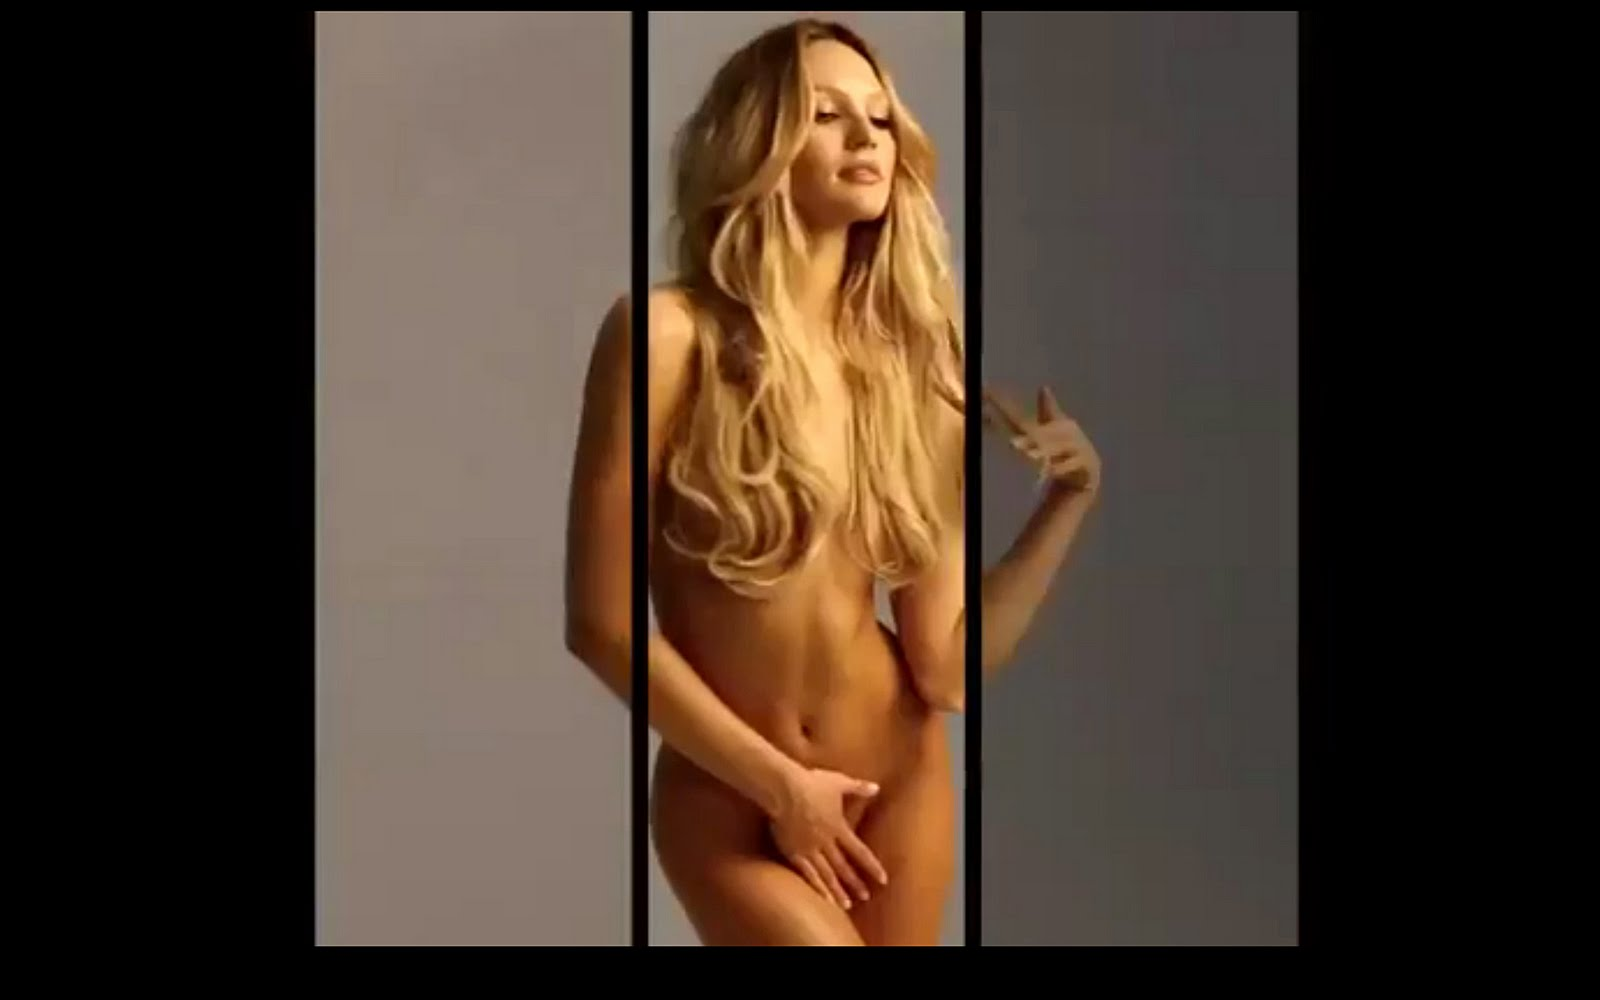 Candice swanepoel so sexy nude pussy was under